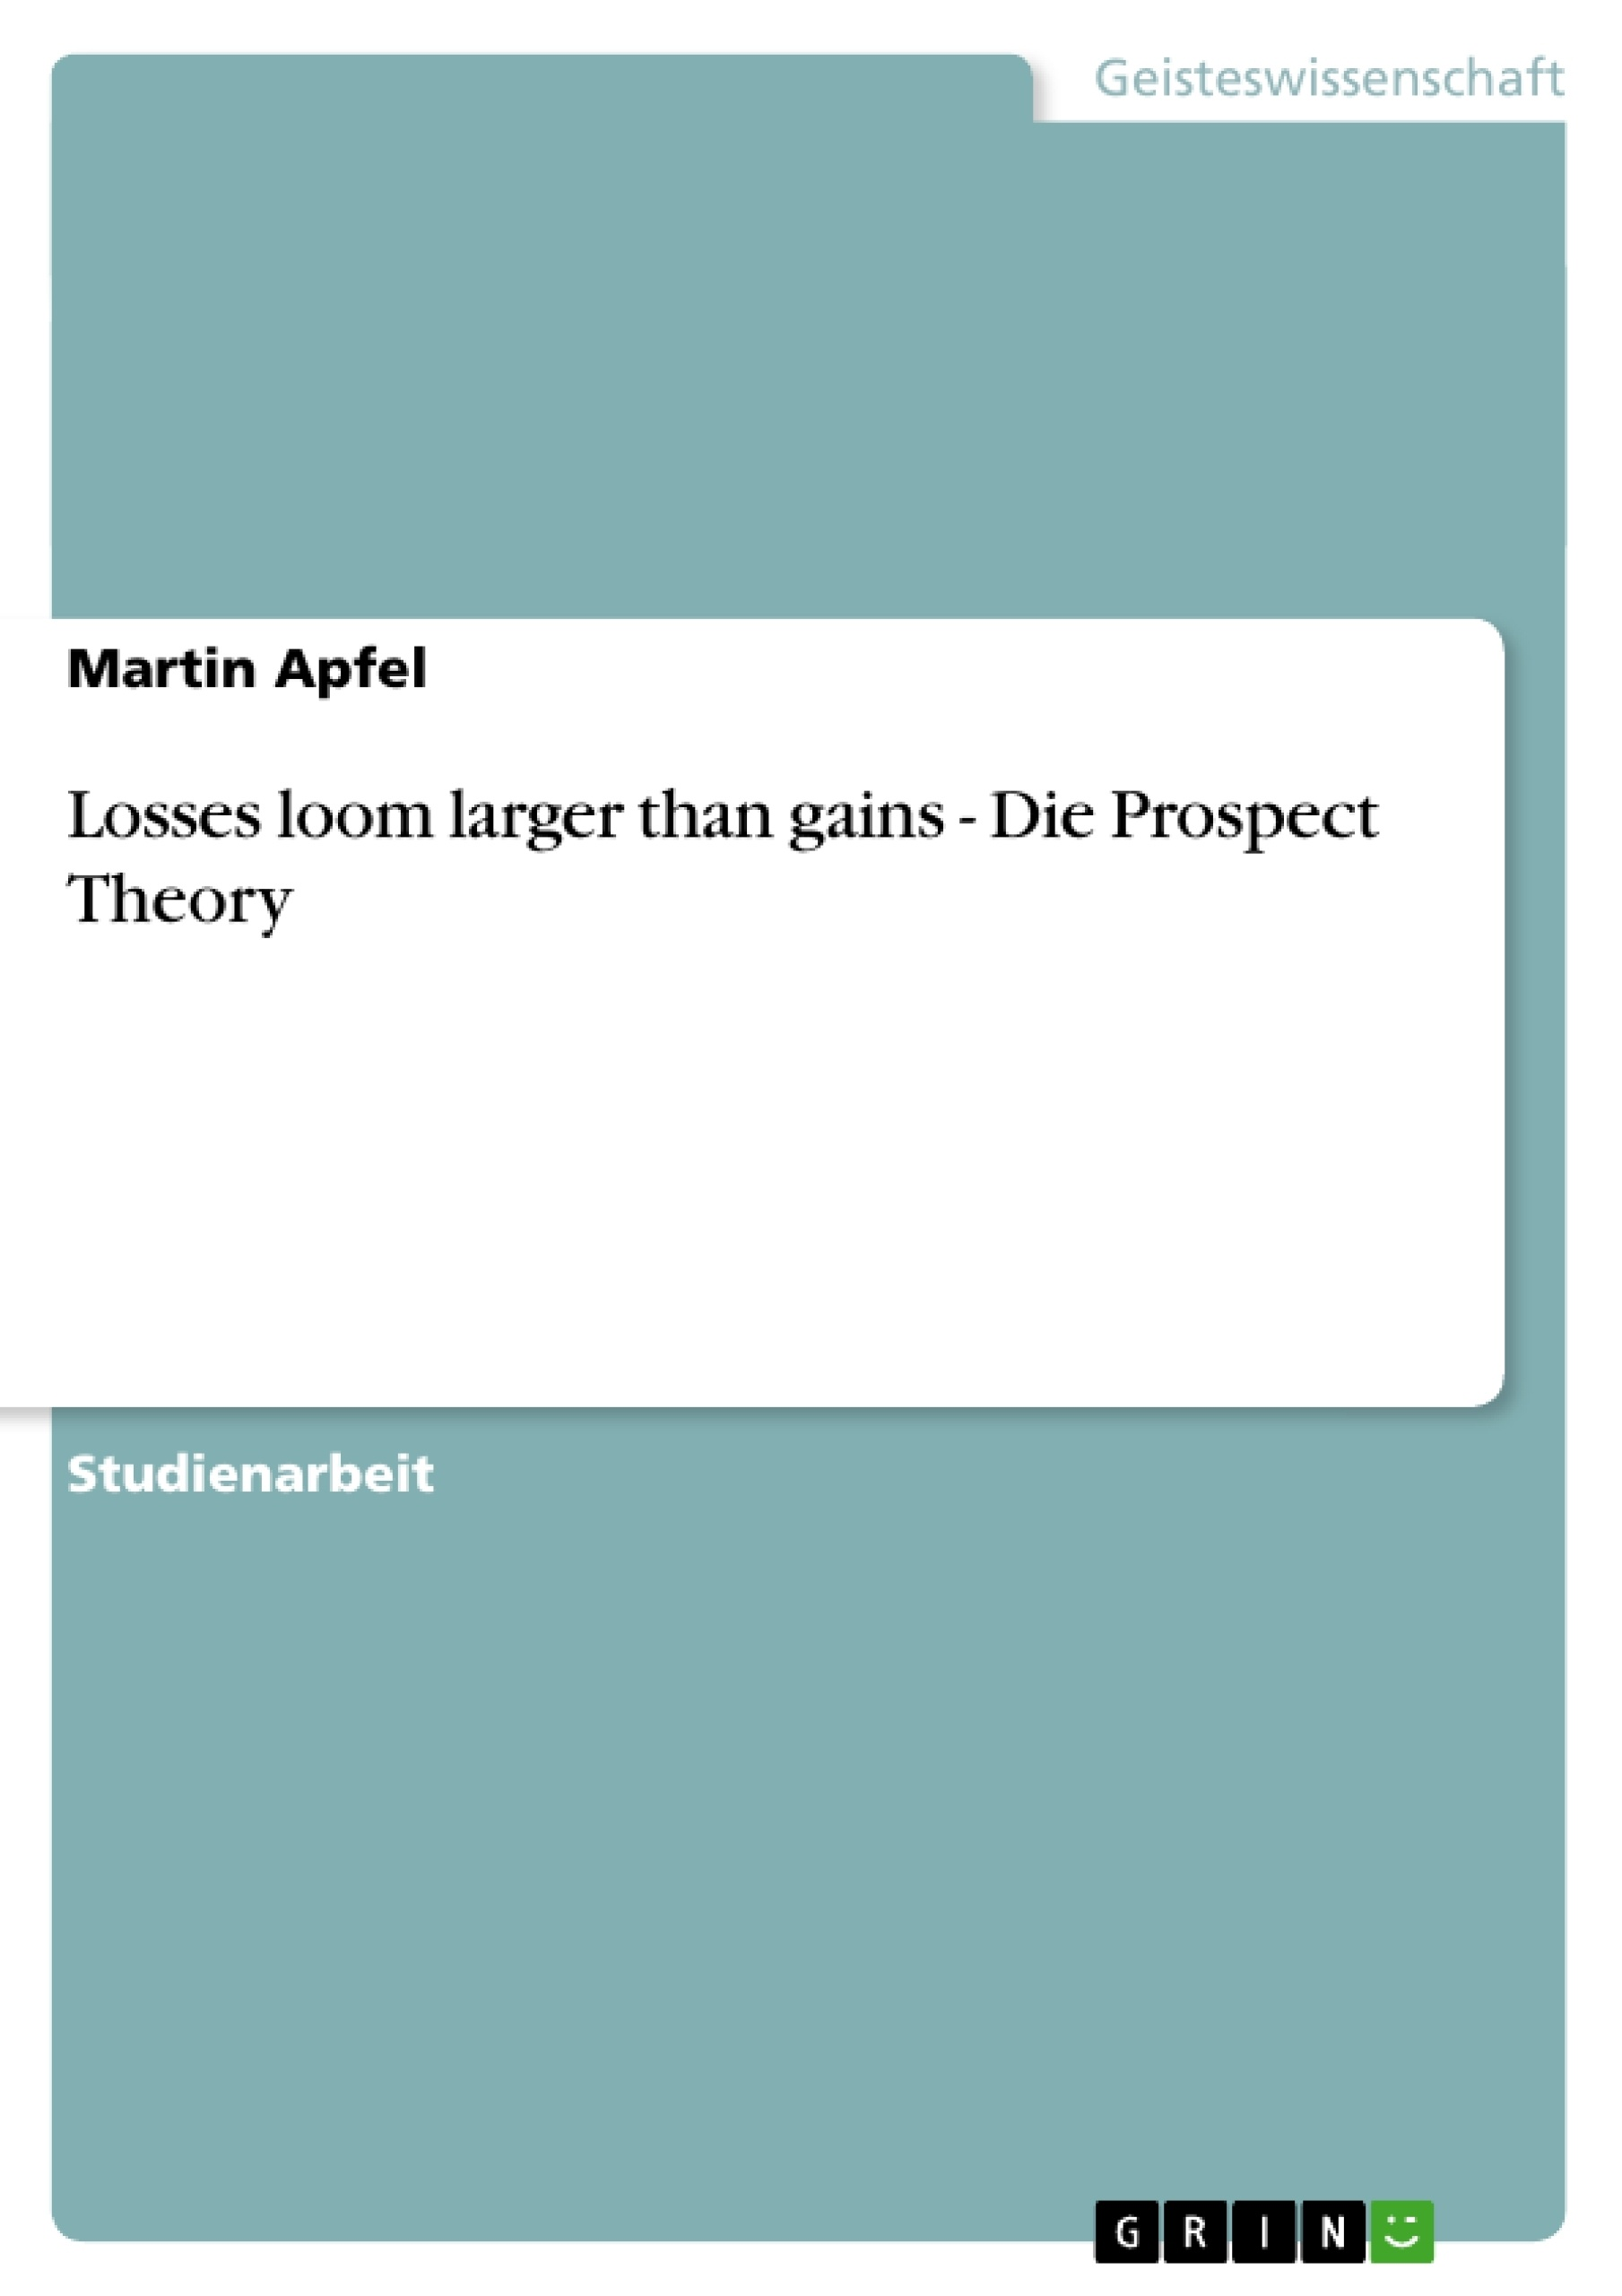 Titel: Losses loom larger than gains - Die Prospect Theory